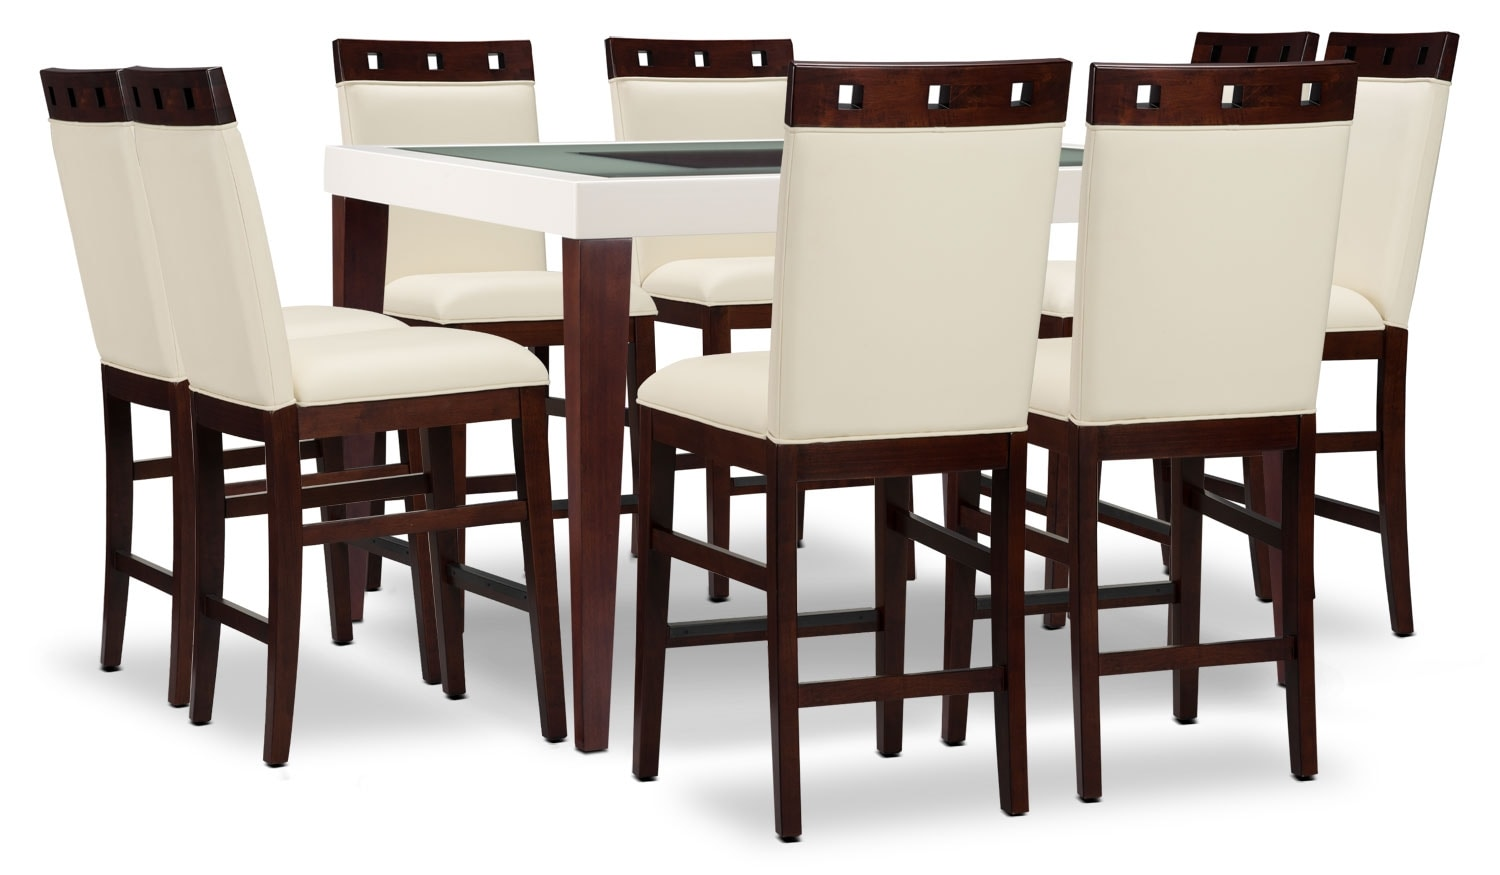 Zeno 9-Piece Counter-Height Dining Package with Wood Top Chair